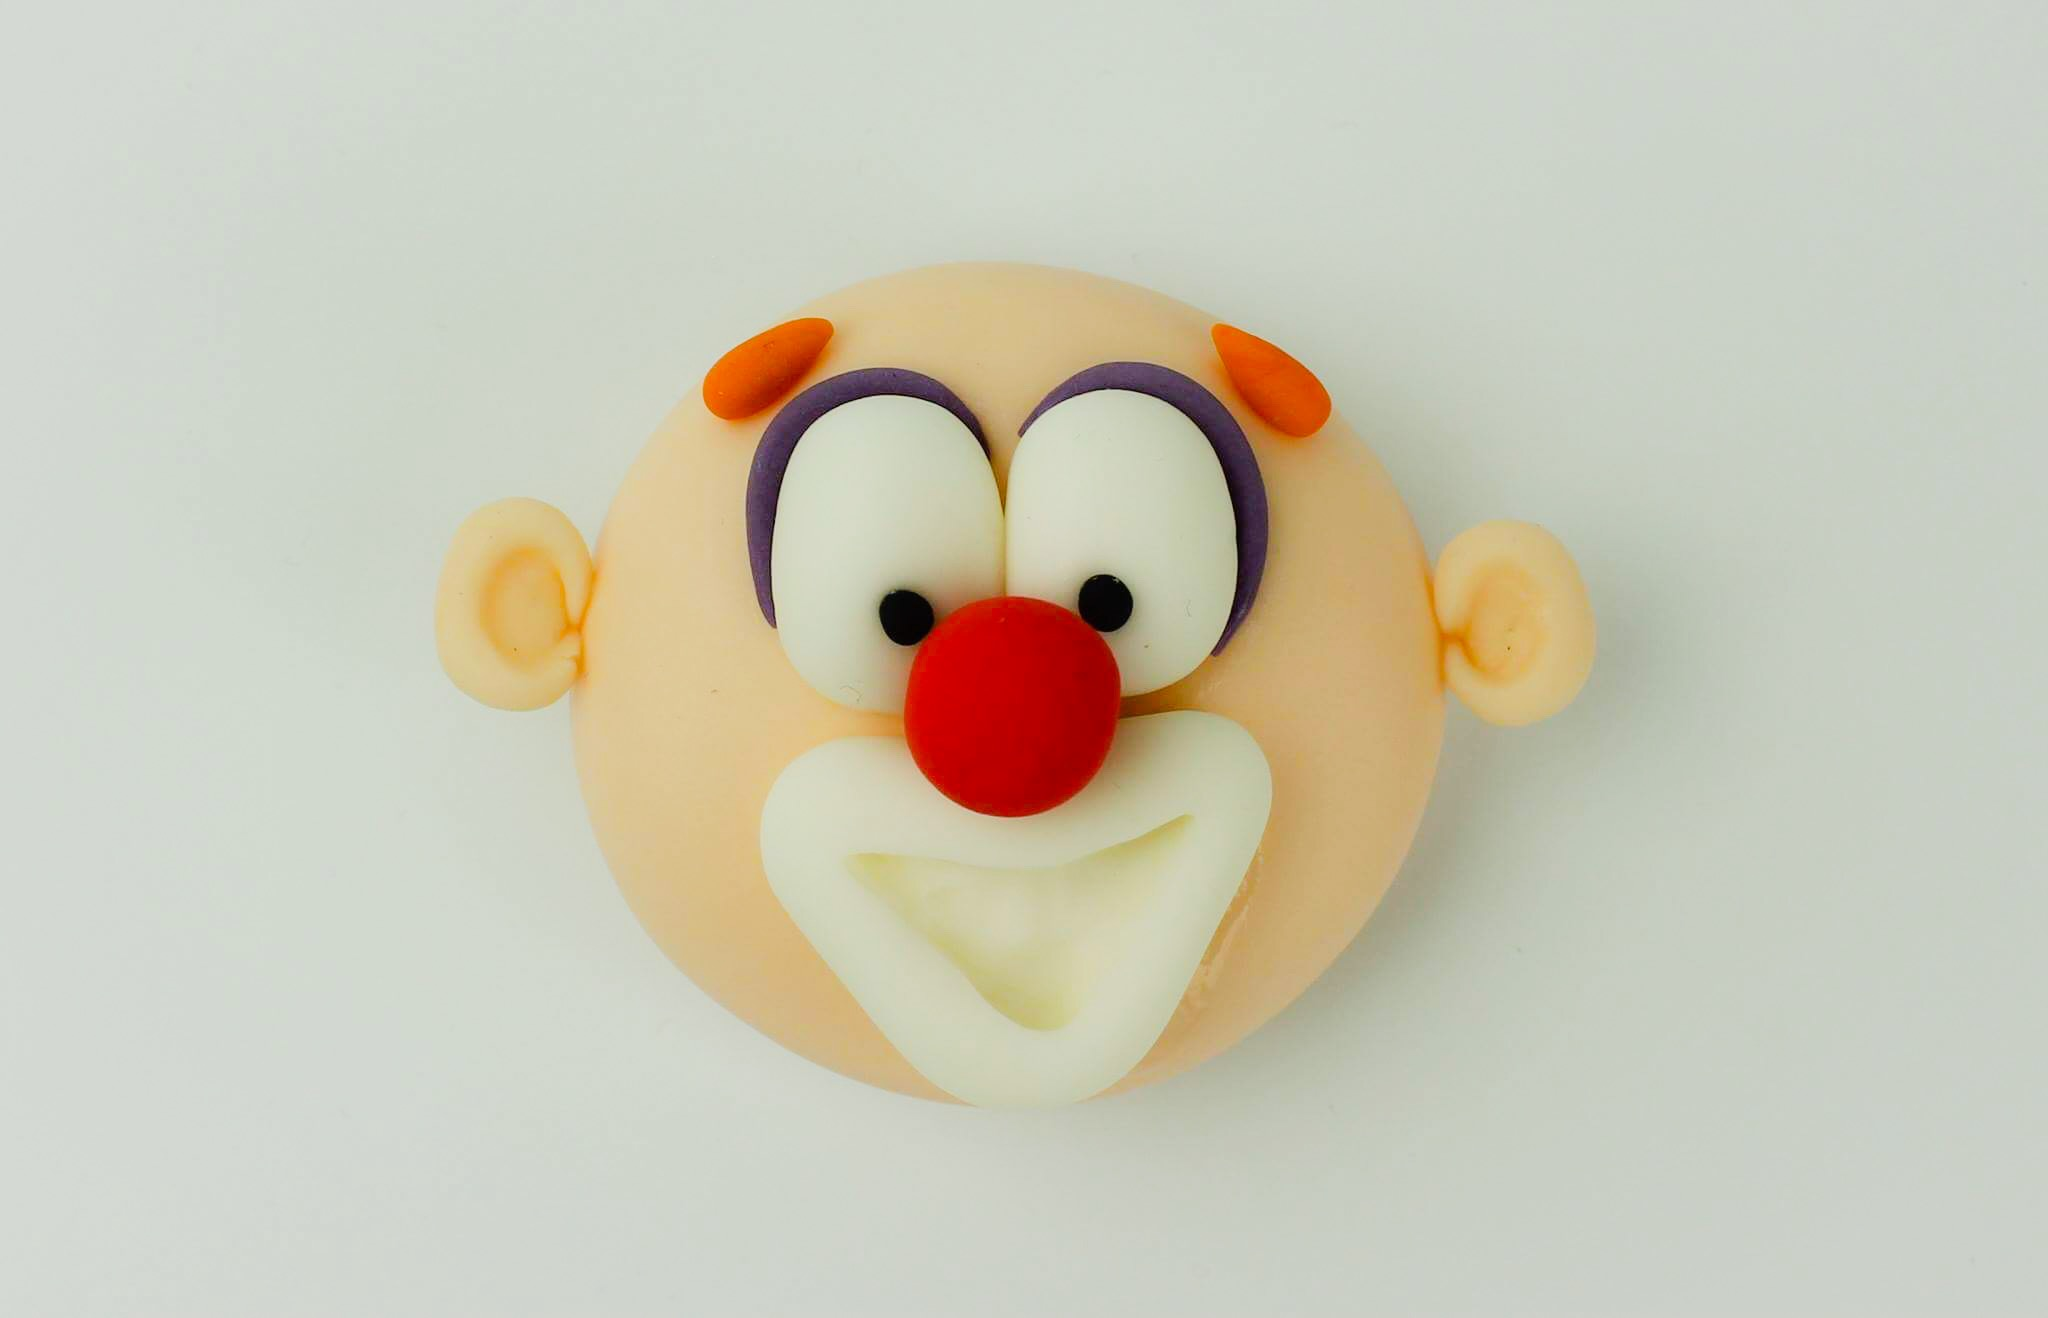 clown-9.JPG#asset:19561